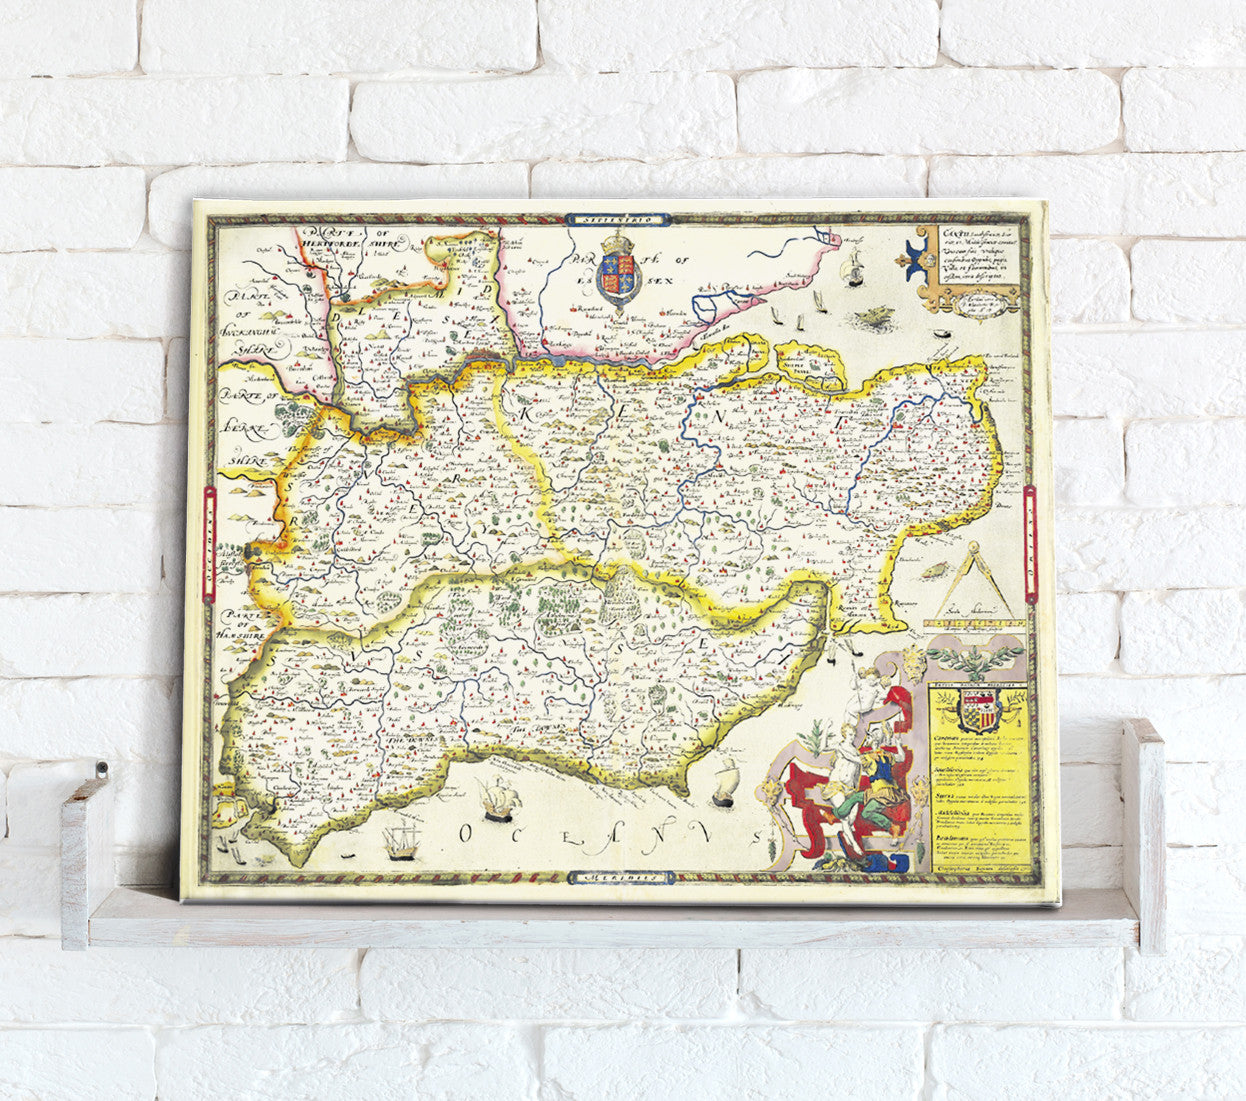 Map Of South East England Counties.Map Canvas Vintage County Map South East England From Love Maps